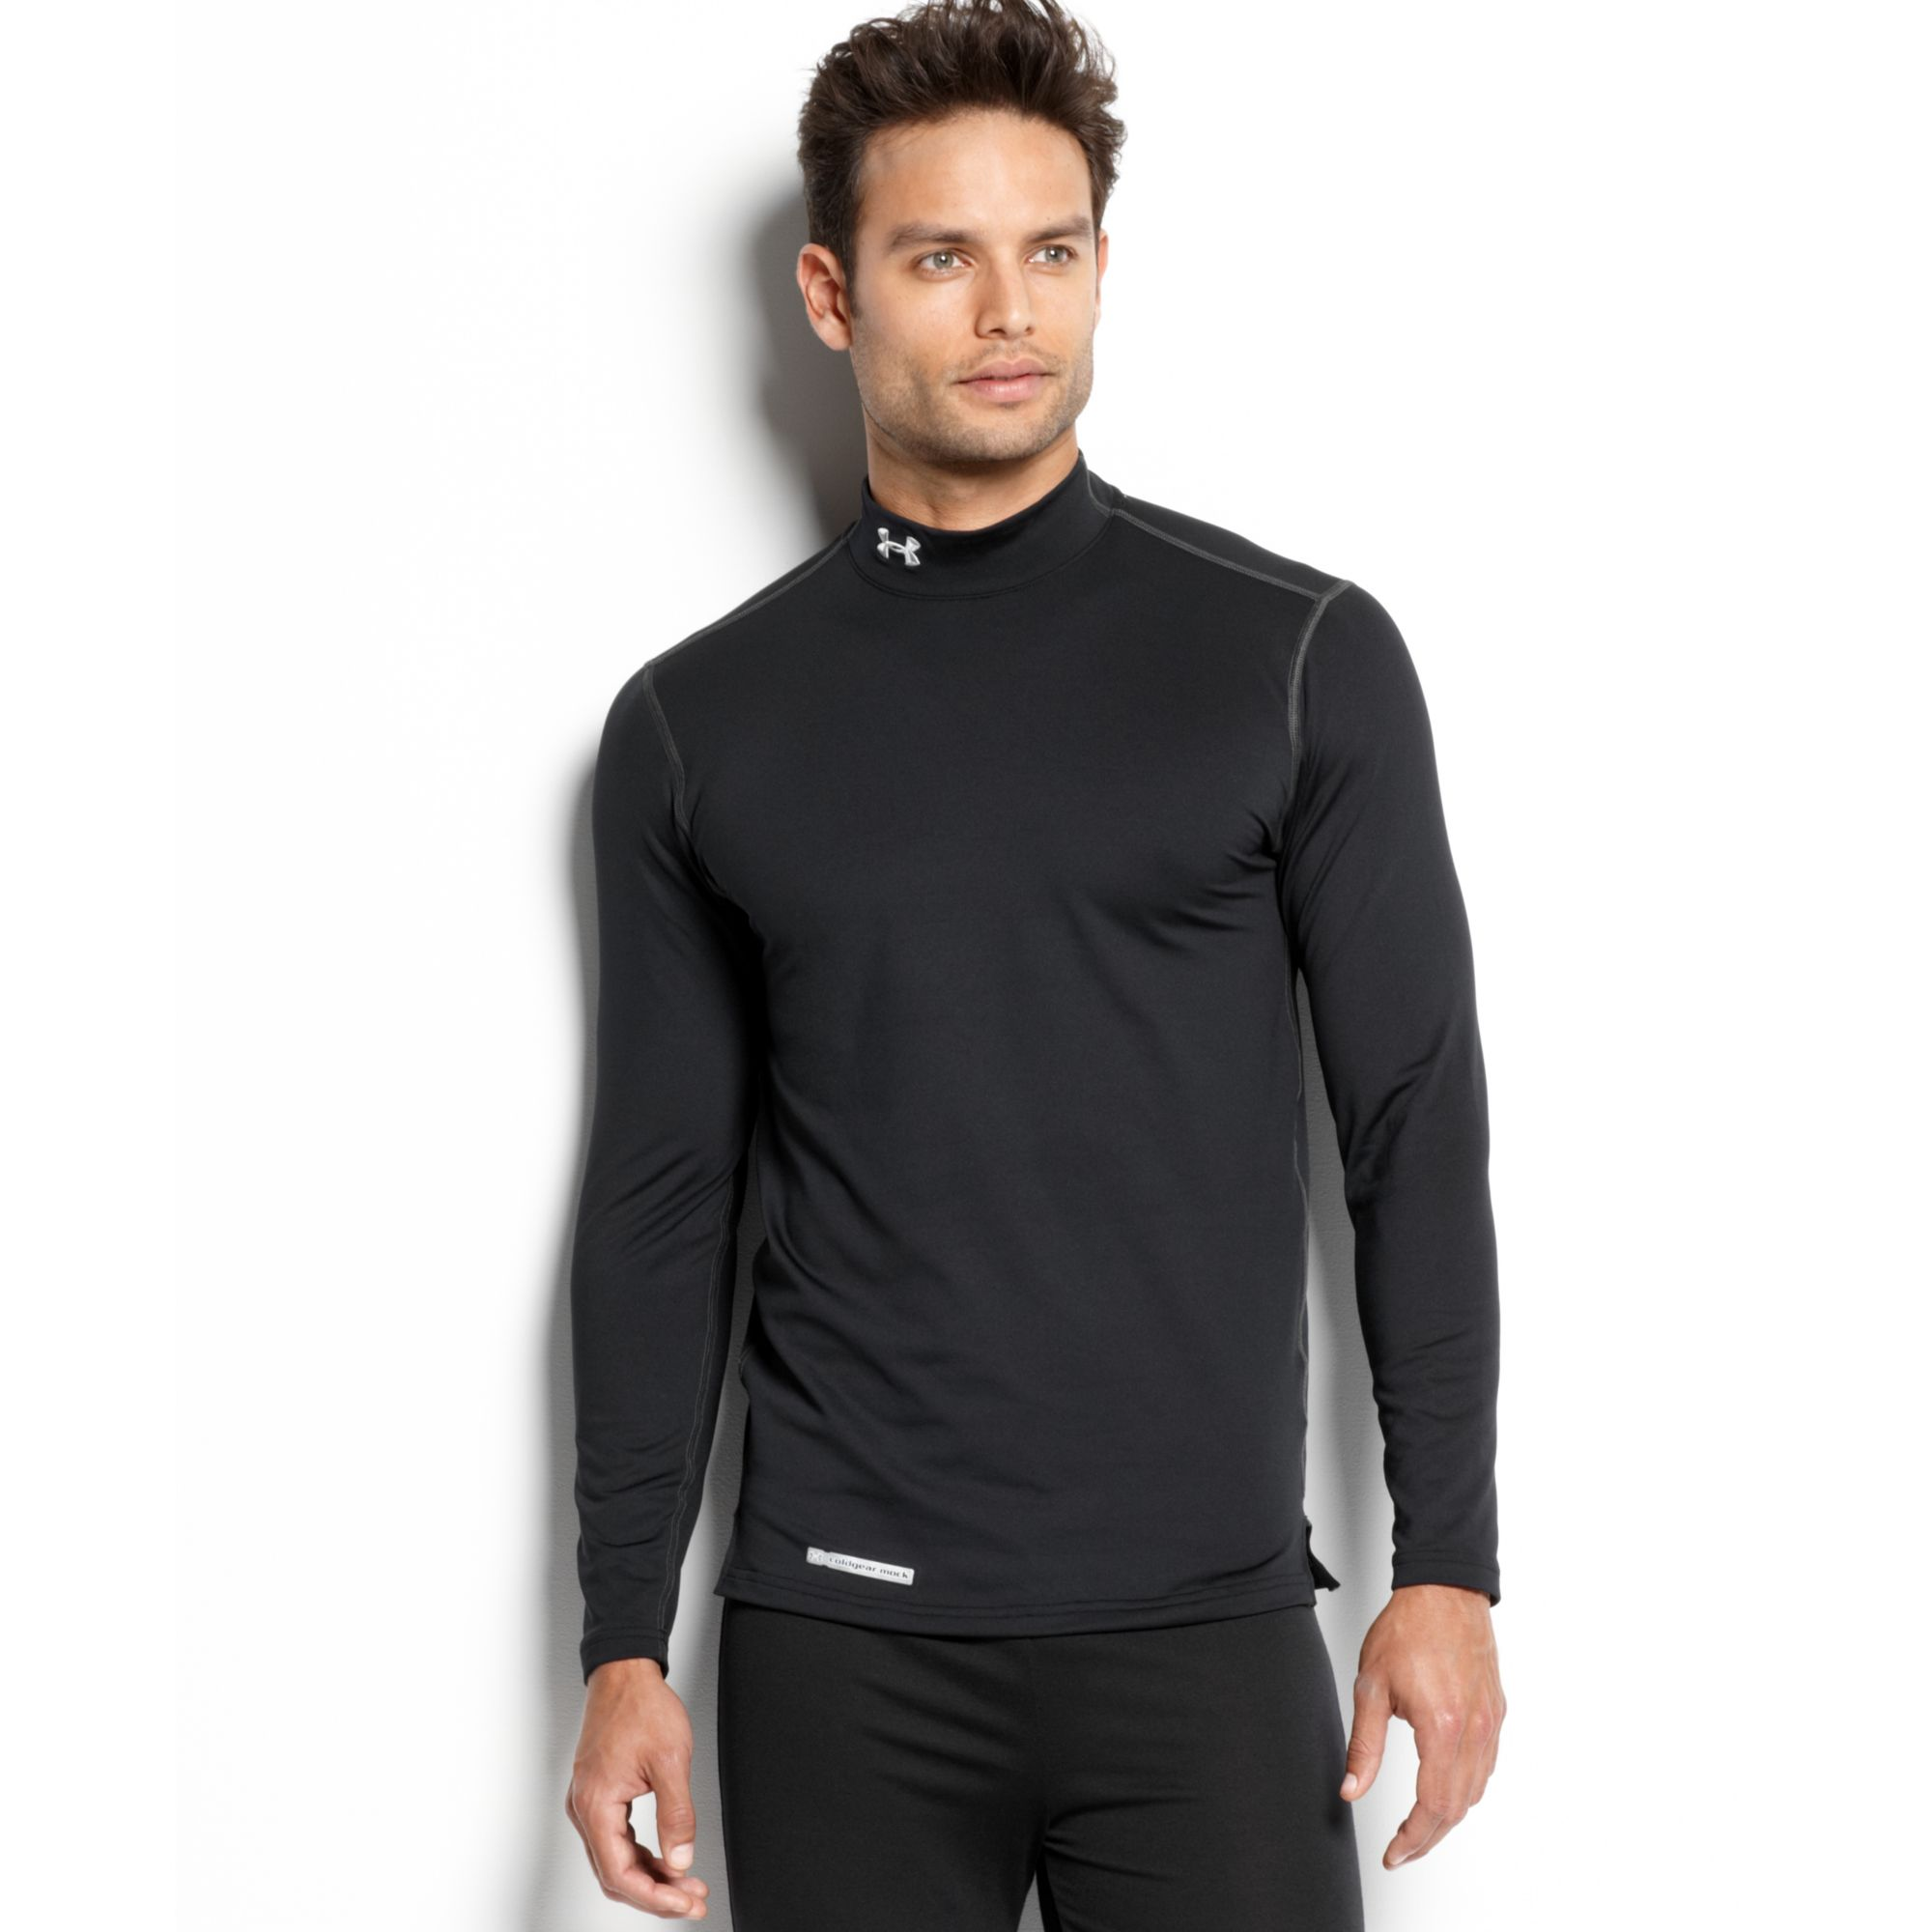 Under armour evo coldgear fitted long sleeve mock t shirt for Under armour cold gear shirt mens